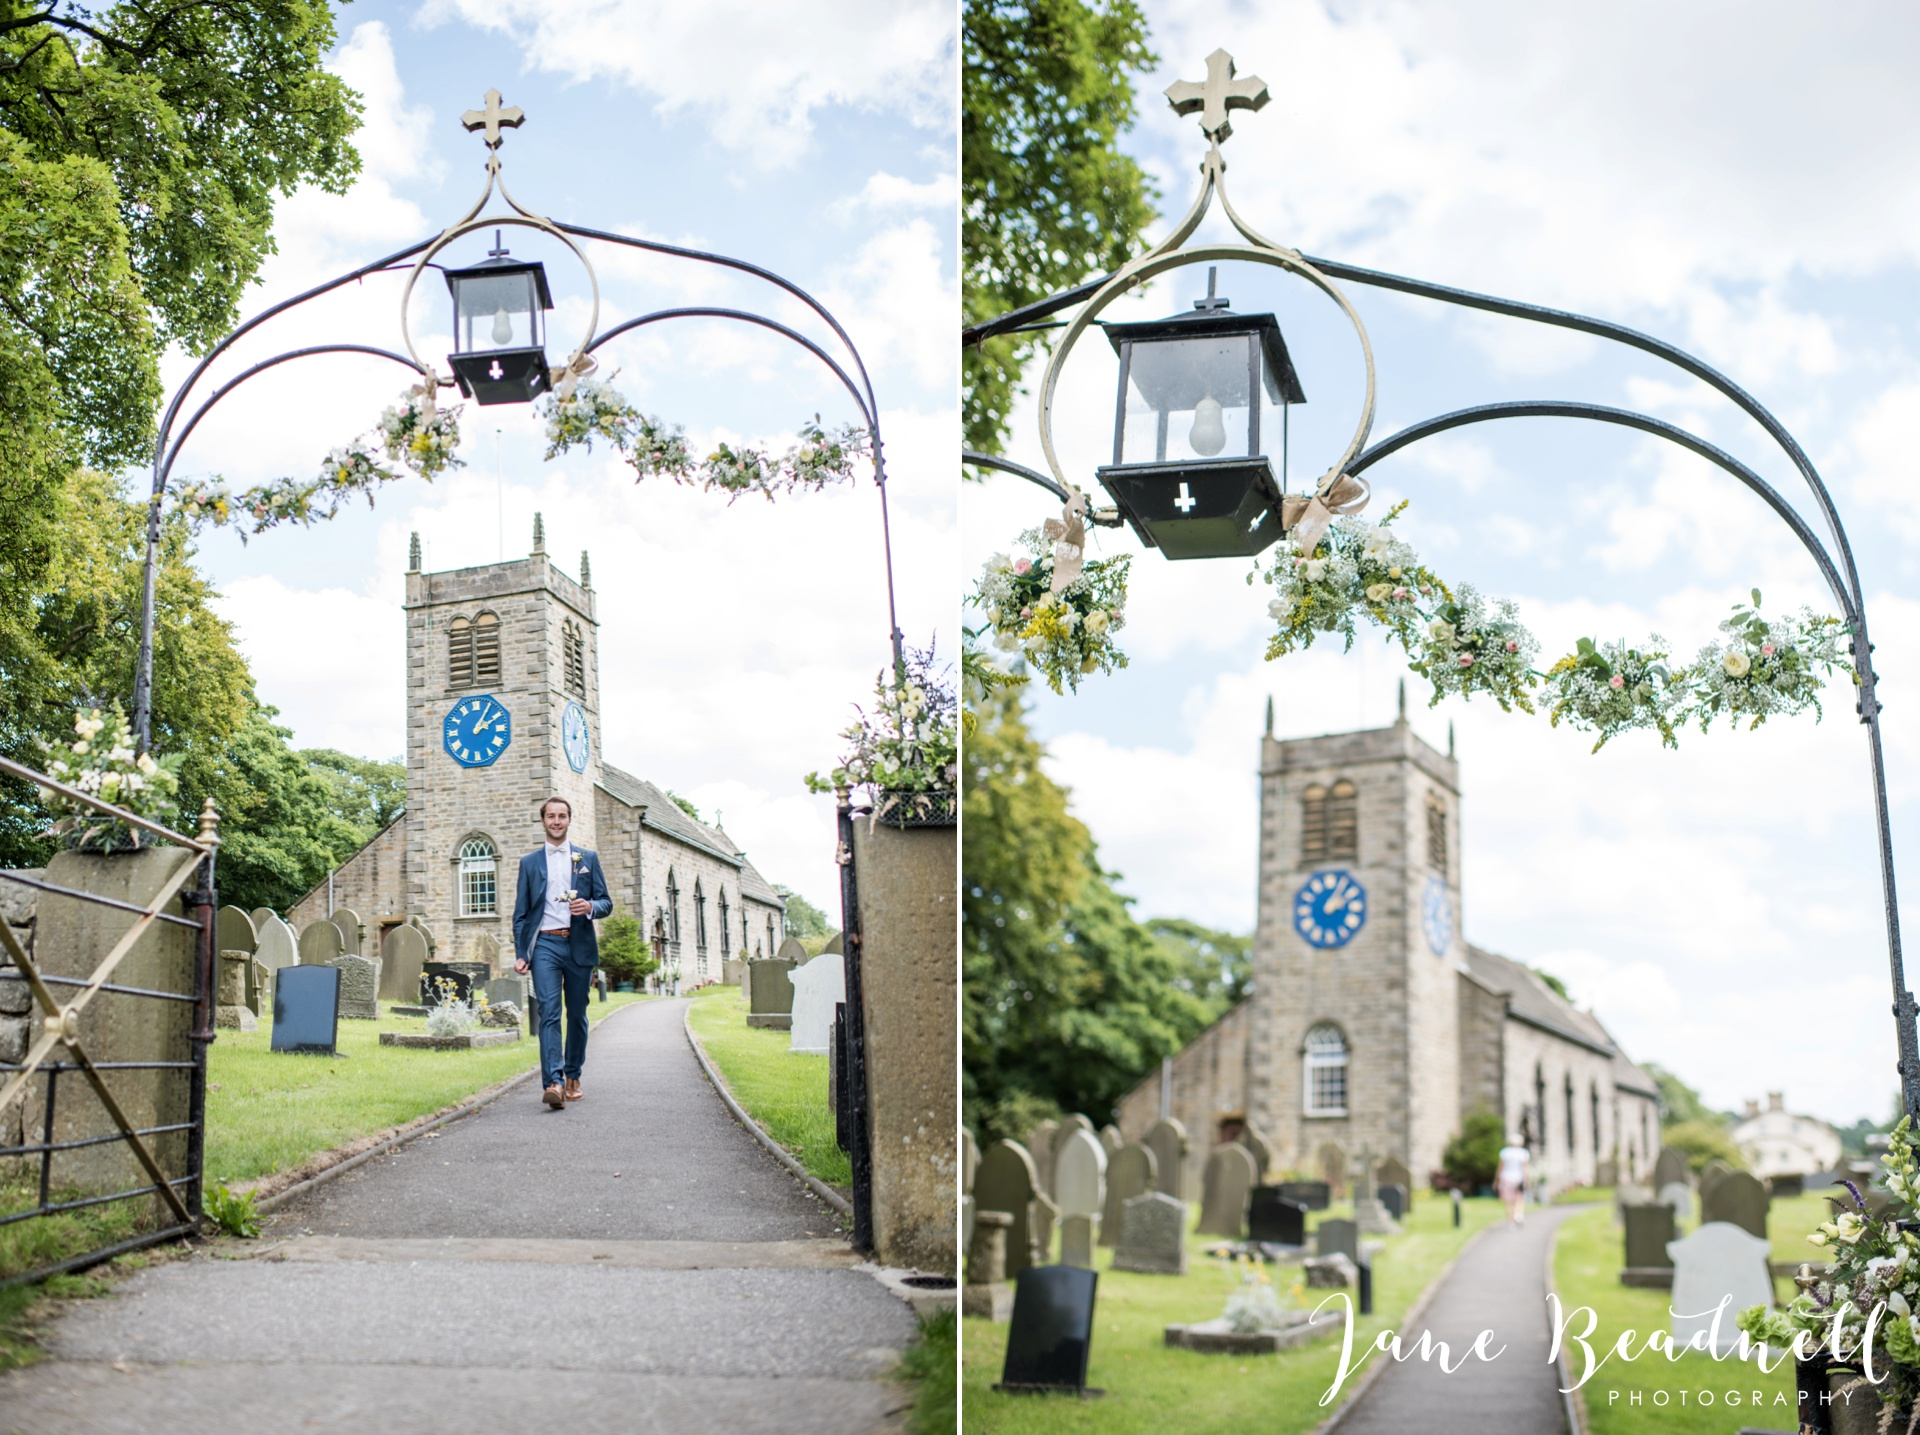 Jane Beadnell fine art wedding photographer Leeds_0020